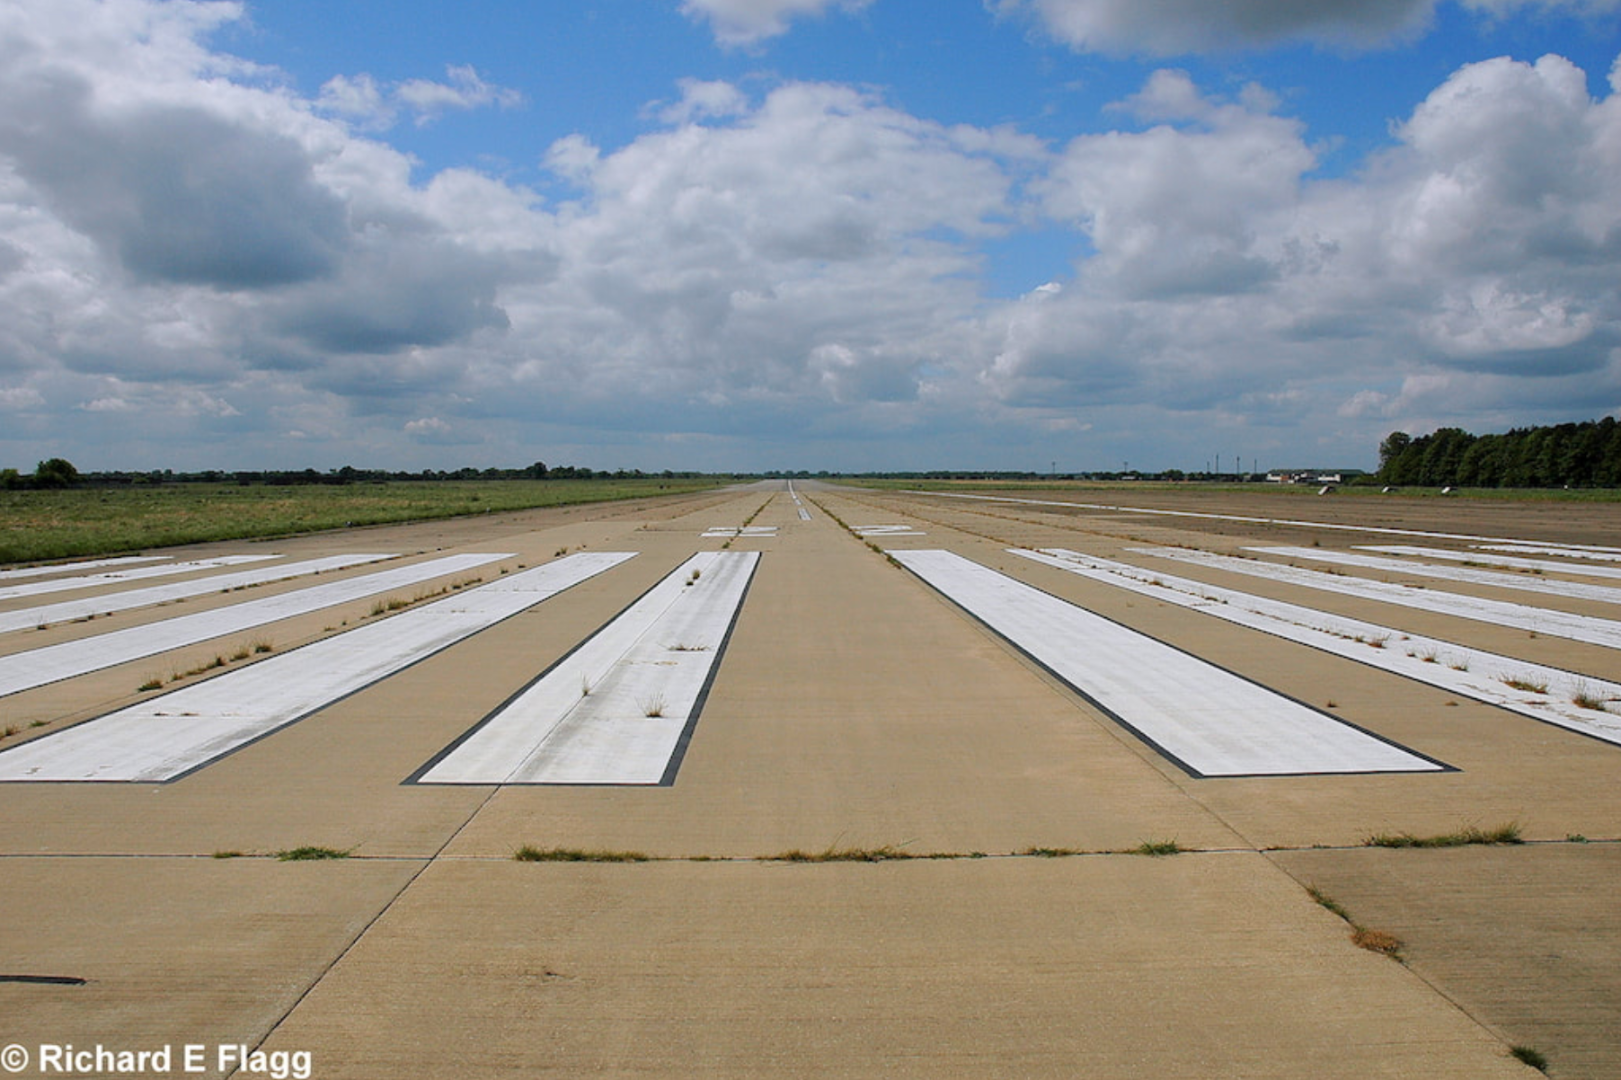 009Runway 04:22. Looking south west from the runway 22 threshold - 18 May 2008.png